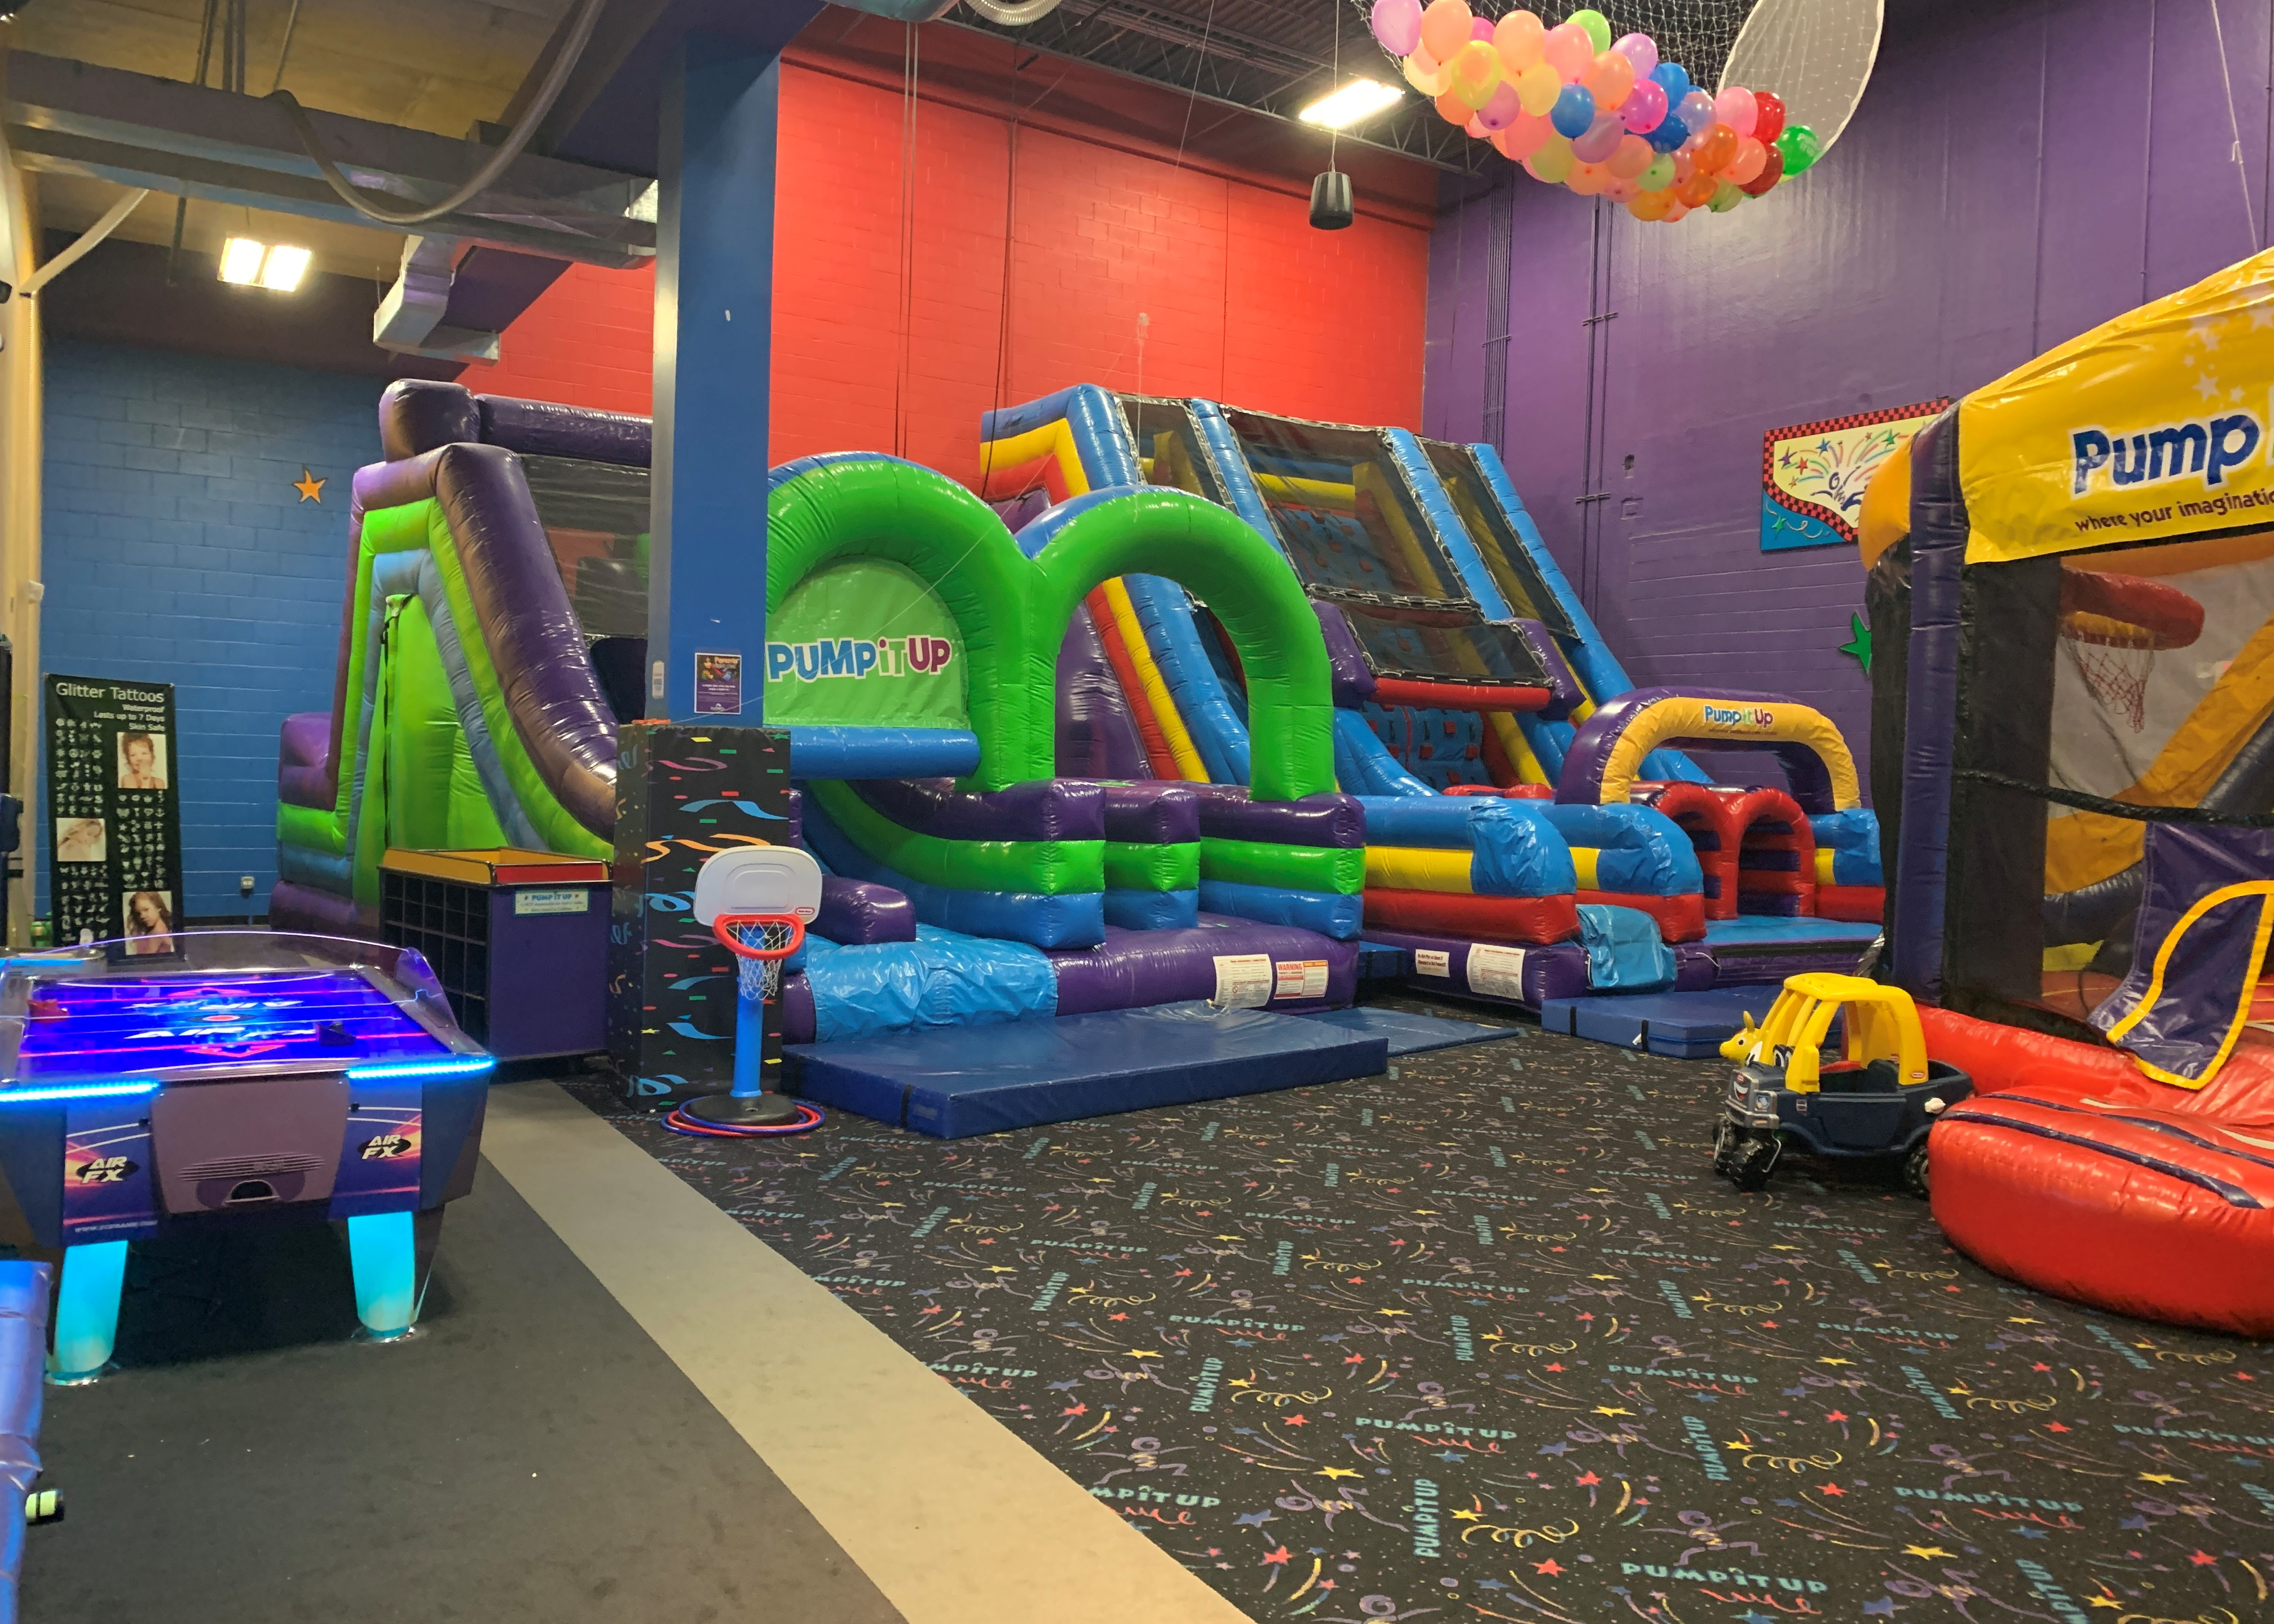 Pump It Up birthday party arena space with three large inflatable rides for private parties.